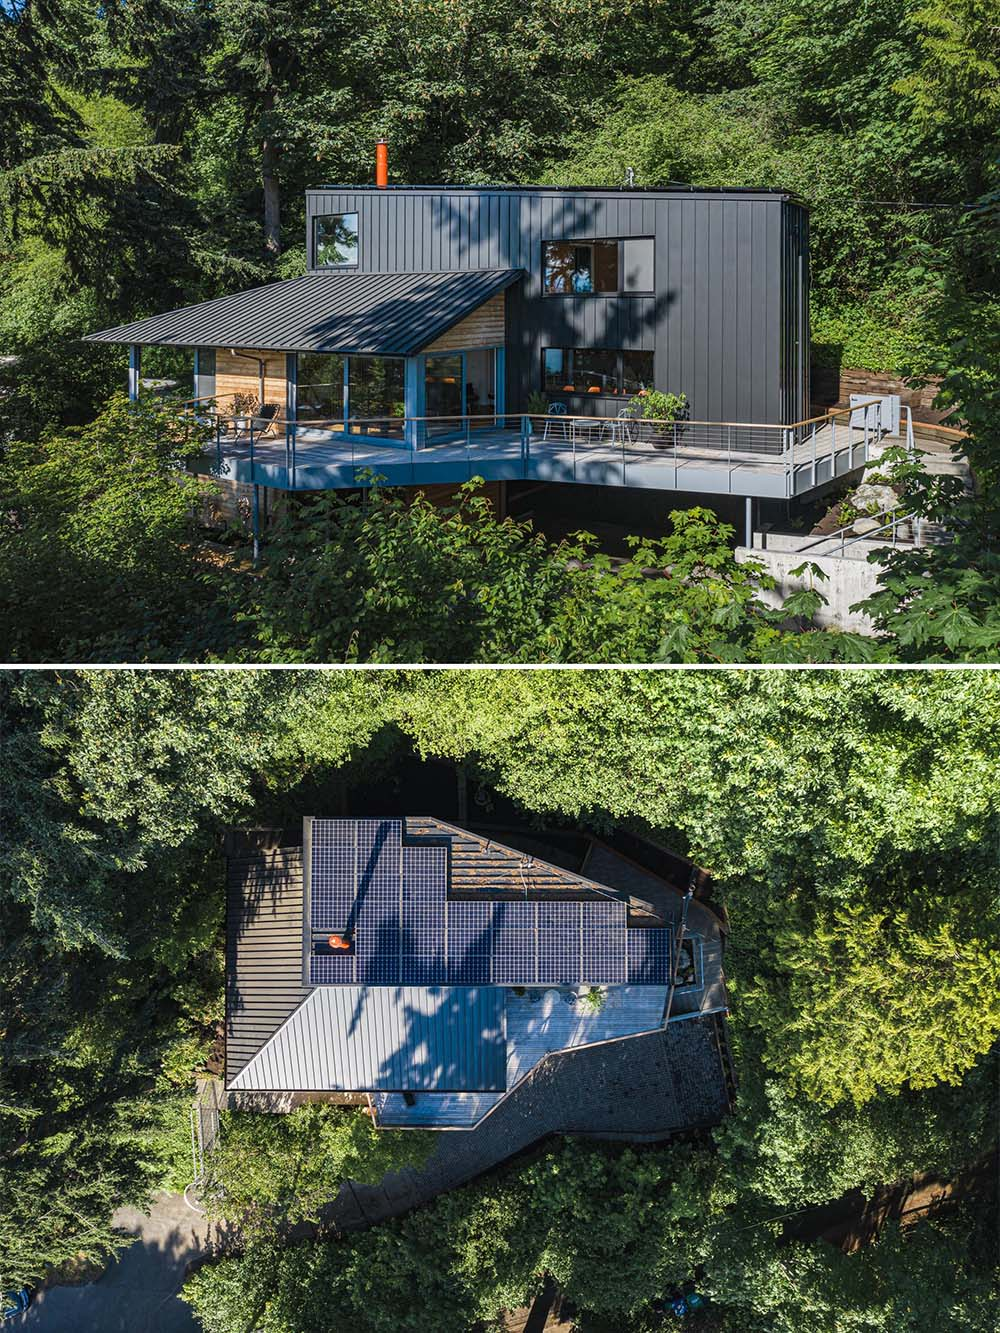 Located on a steep site, the updated black metal and wood exterior of this home is topped with solar panels on the roof.